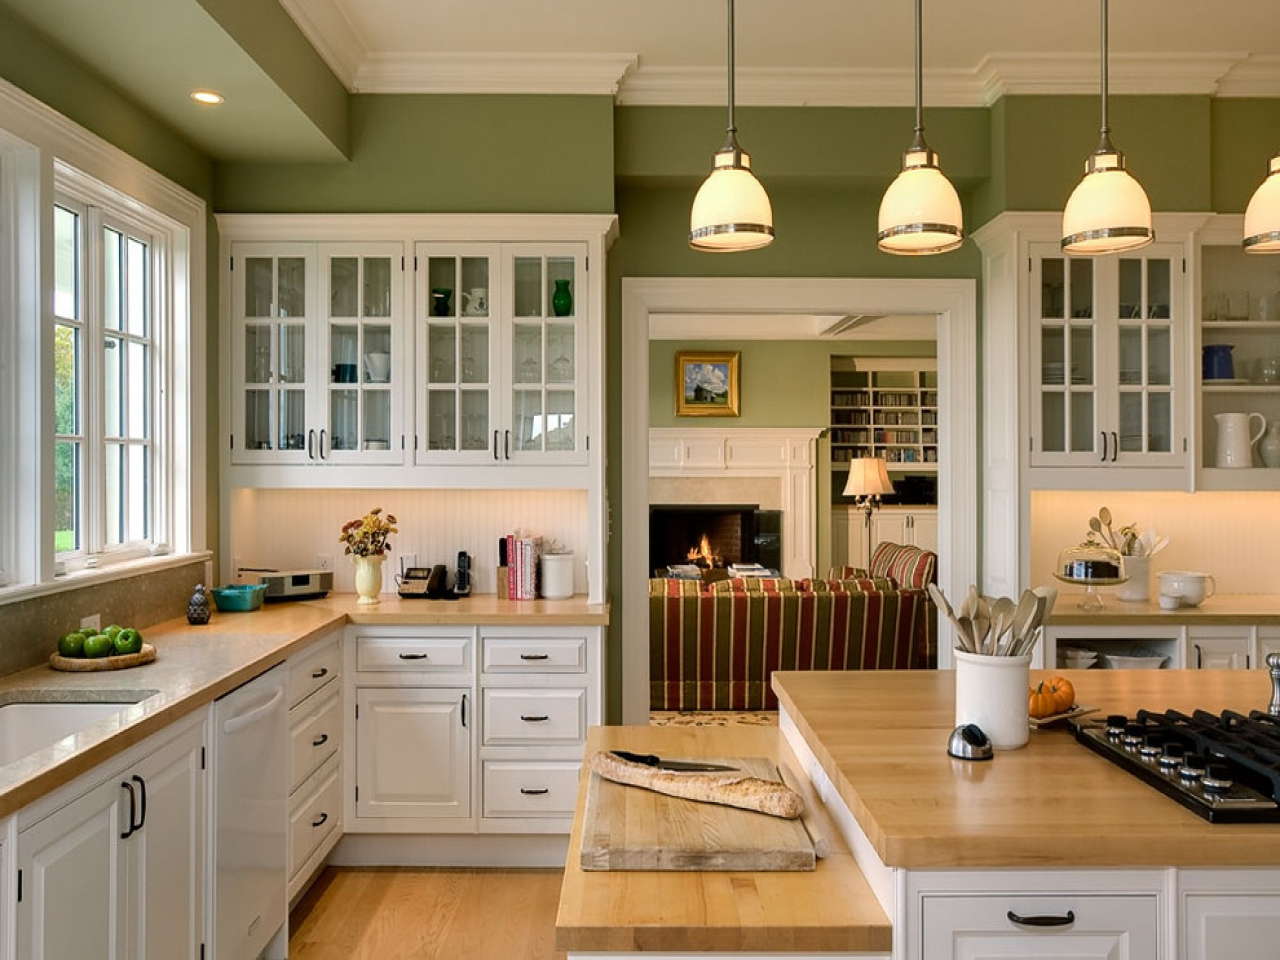 Beau ... Painted Walls U2013 Country Style Kitchen Design Ideas ...